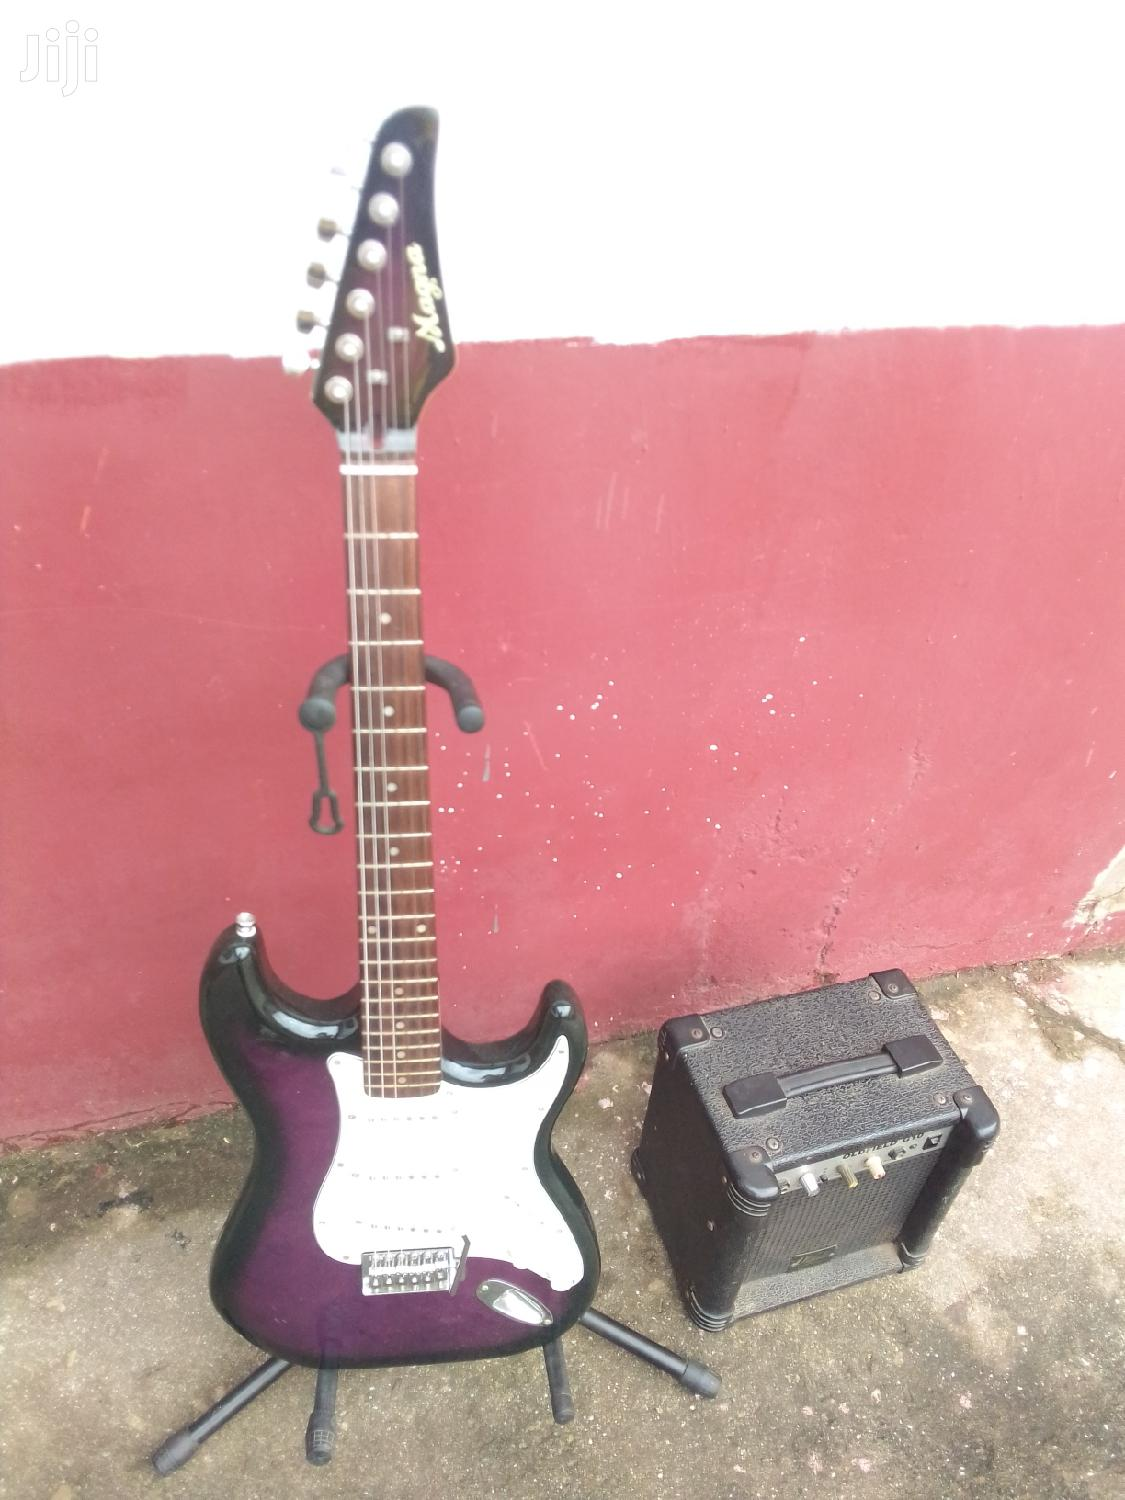 Lead Guitar + Combo for Sale | Musical Instruments & Gear for sale in Shama Ahanta East Metropolitan, Western Region, Ghana